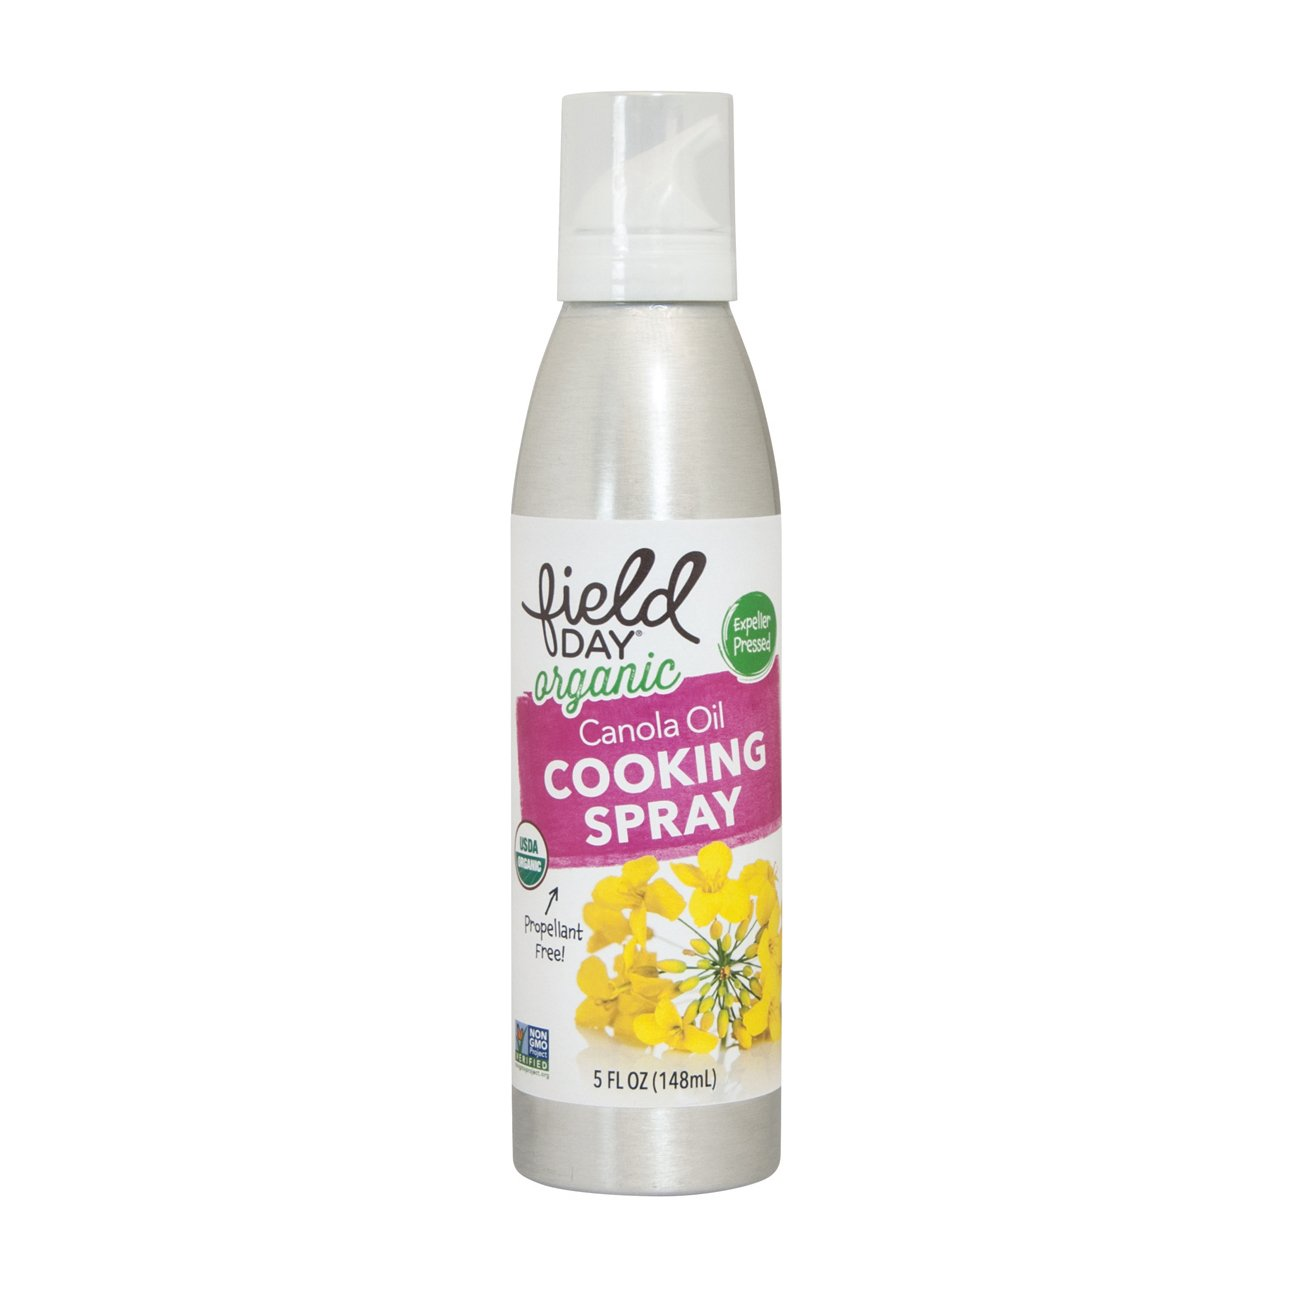 Field Day Organic Canola Oil Cooking Spray, 6 Count